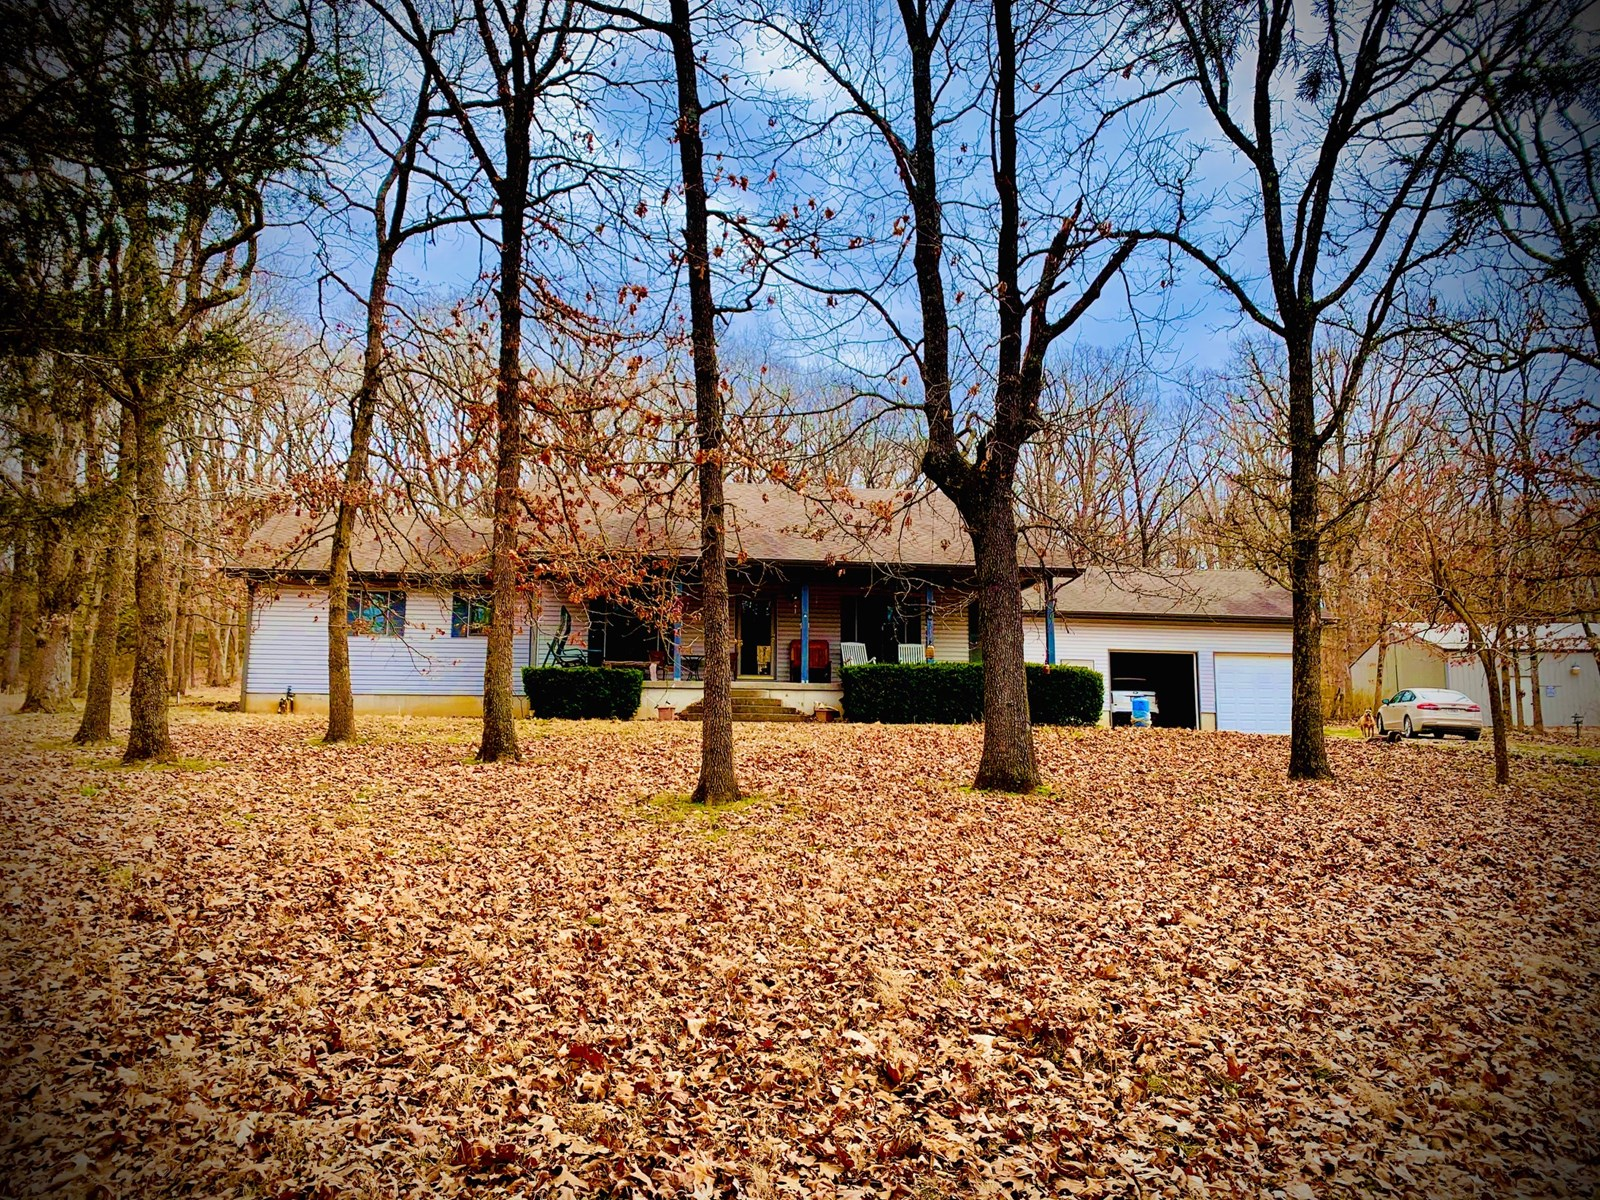 Country Home and Acreage For Sale in St. Clair County MO